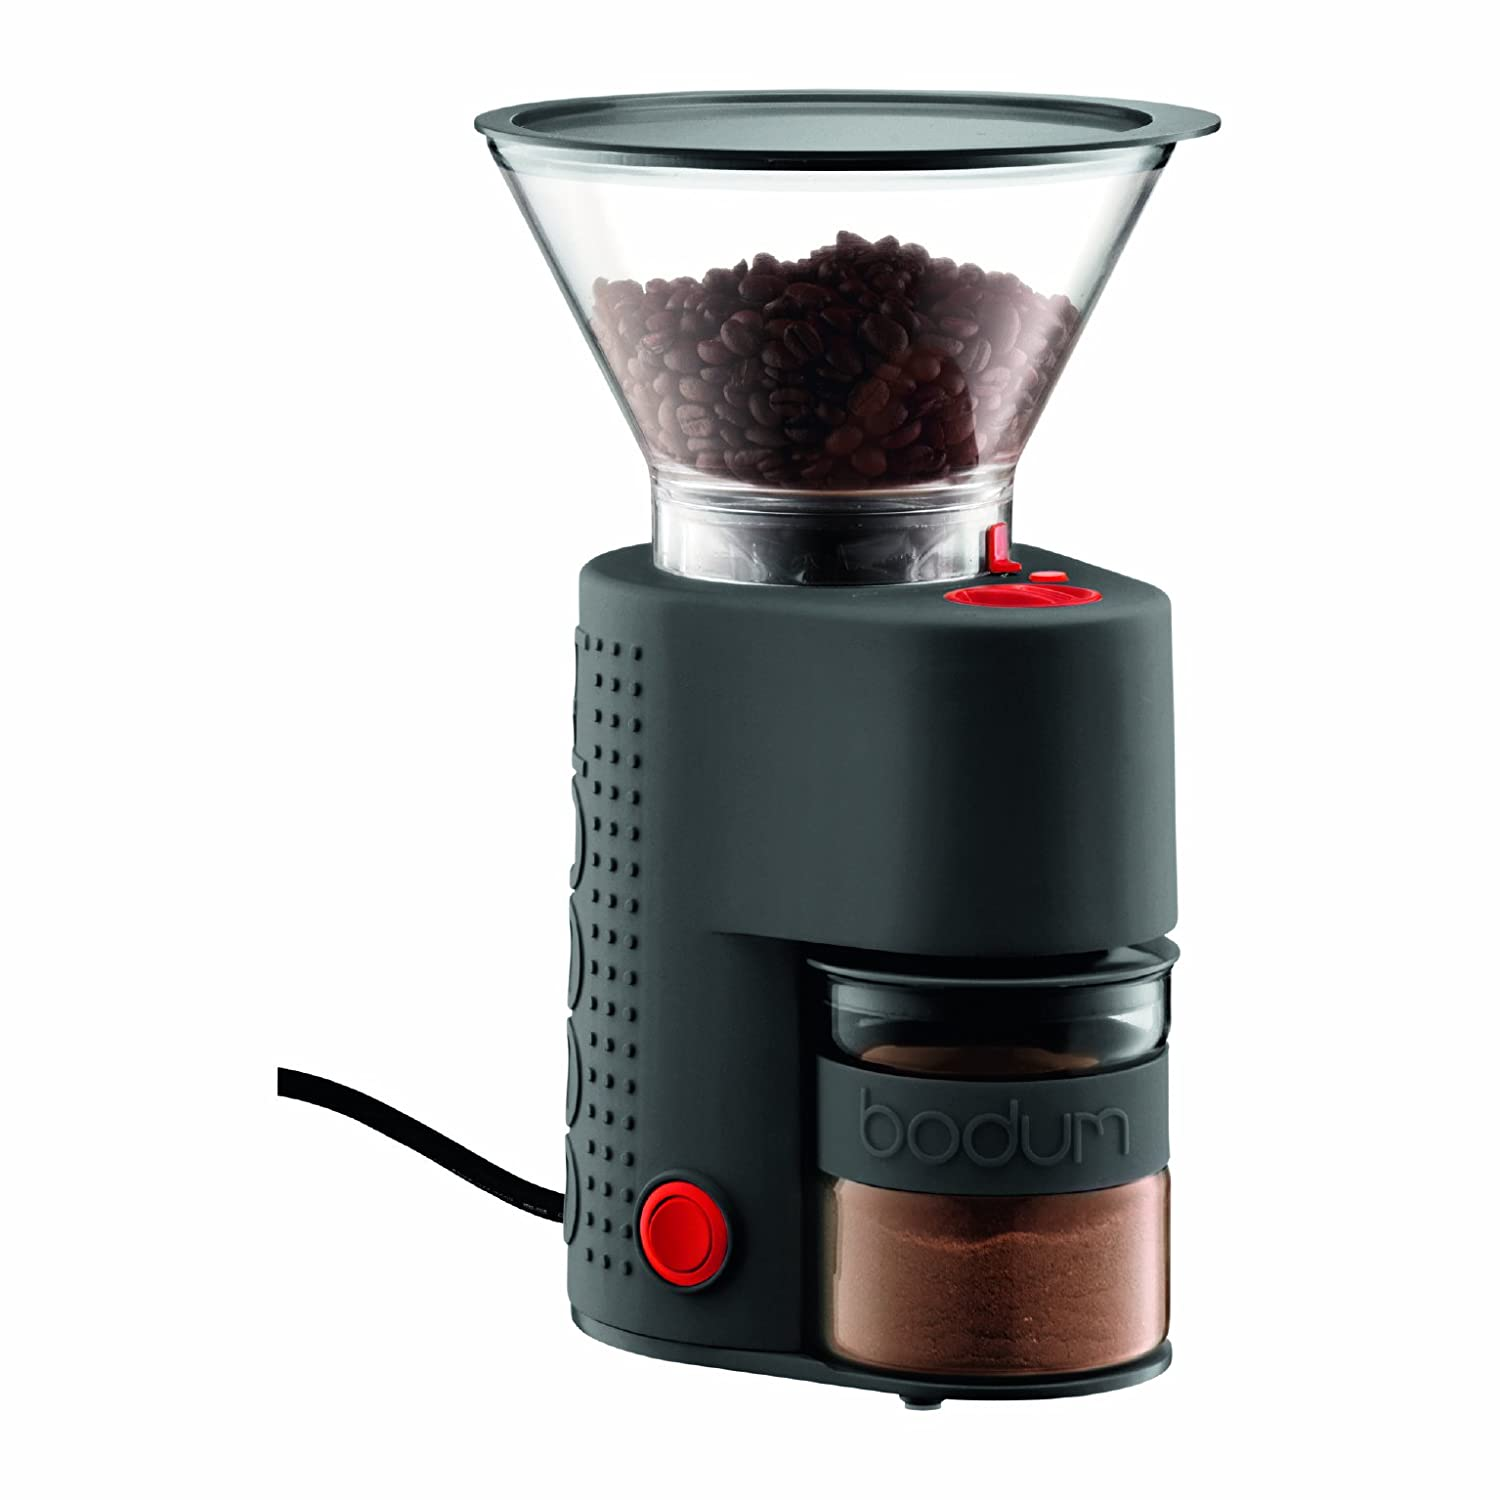 Bodum Bistro Electric Burr Coffee Grinder Black Friday Deals